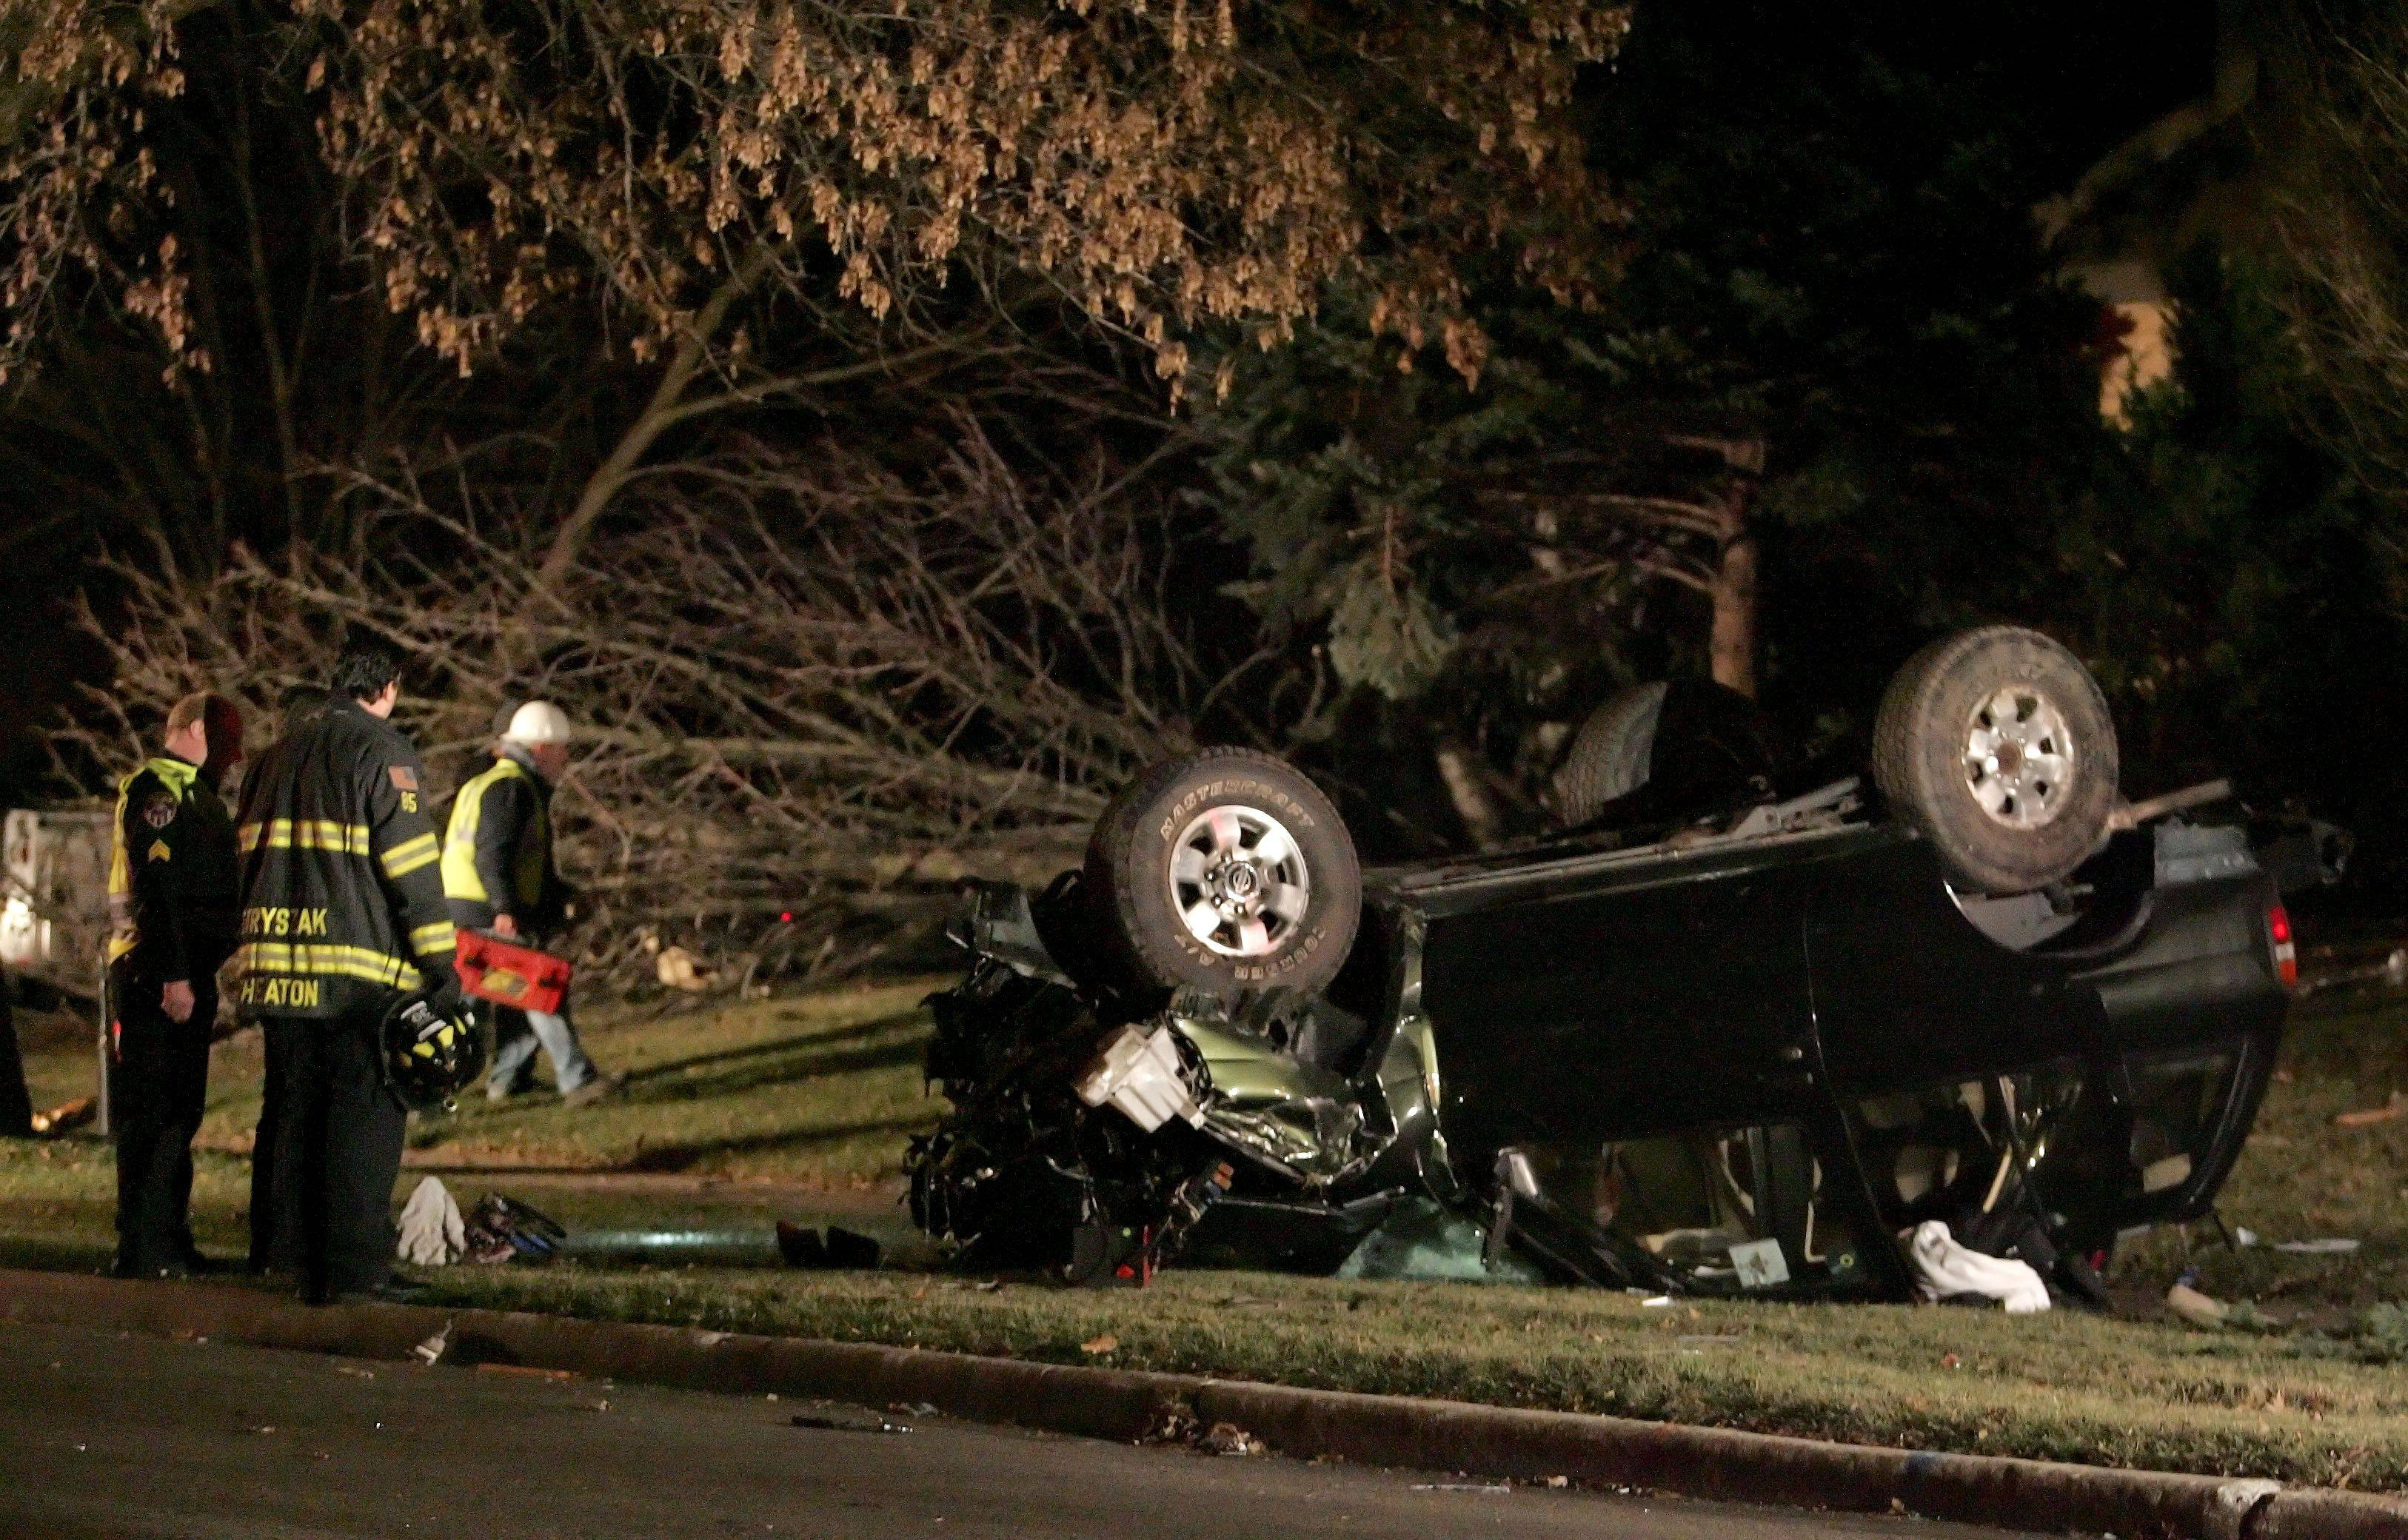 Dawn Patrol: 1 SUV in 3 crashes; Zion-Benton reopening